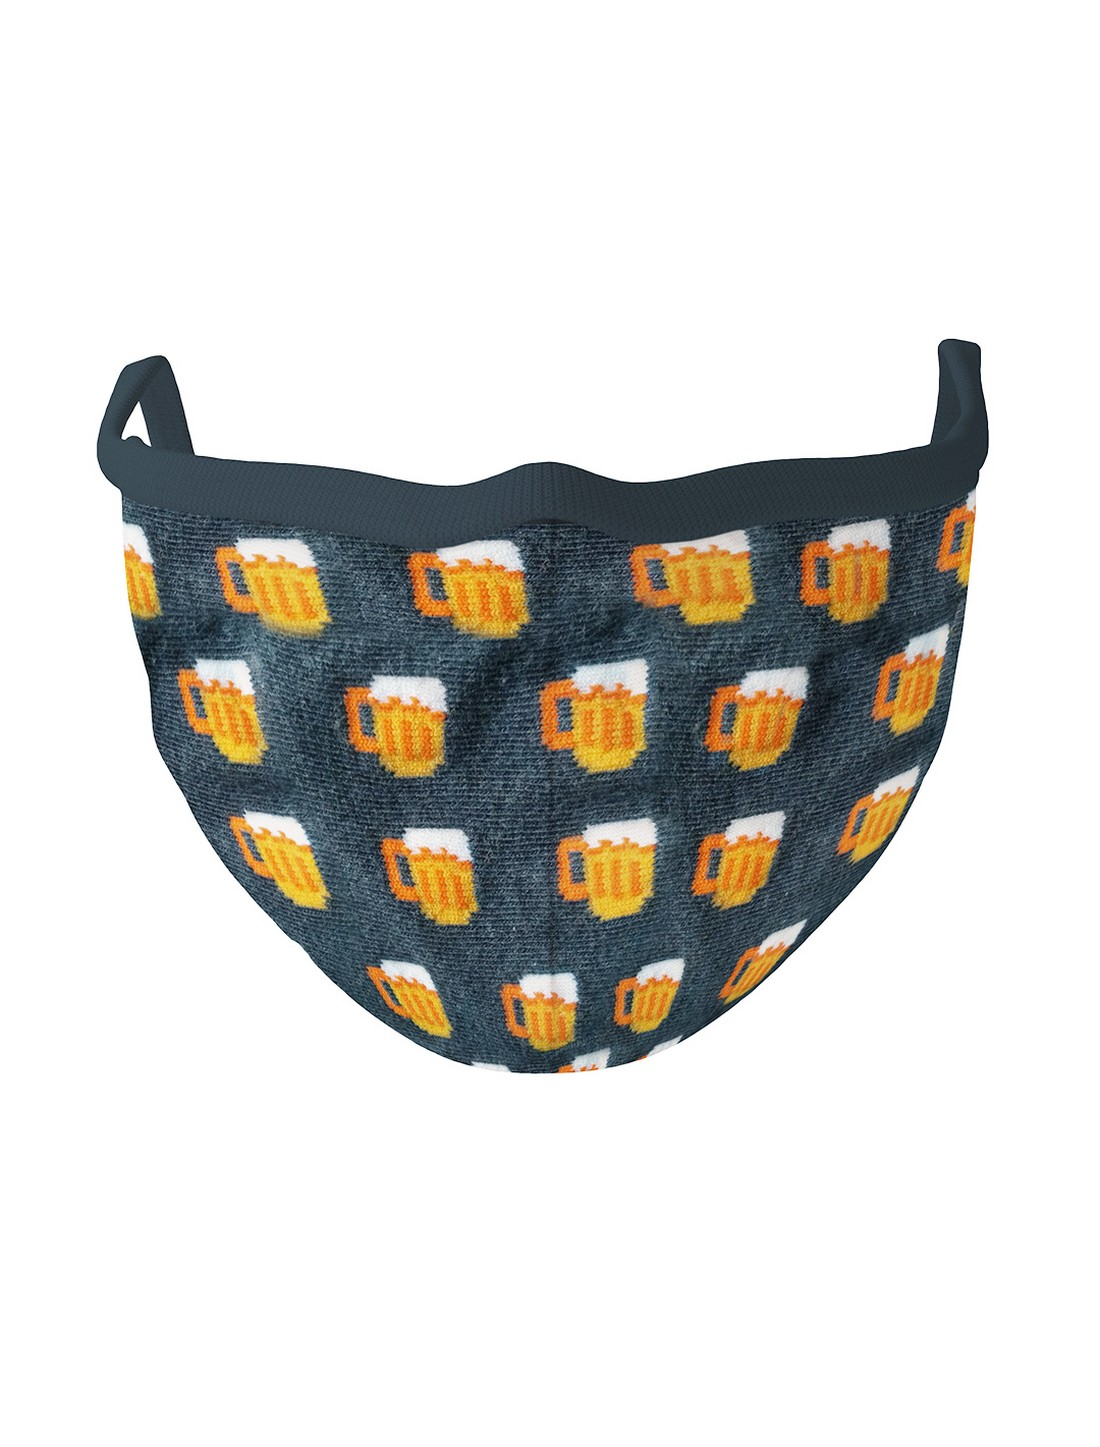 Soxytoes | Soxytoes Navy Blue Stylish Protective Super Safe Washable Knitted Cotton Mouth Cover Face Mask